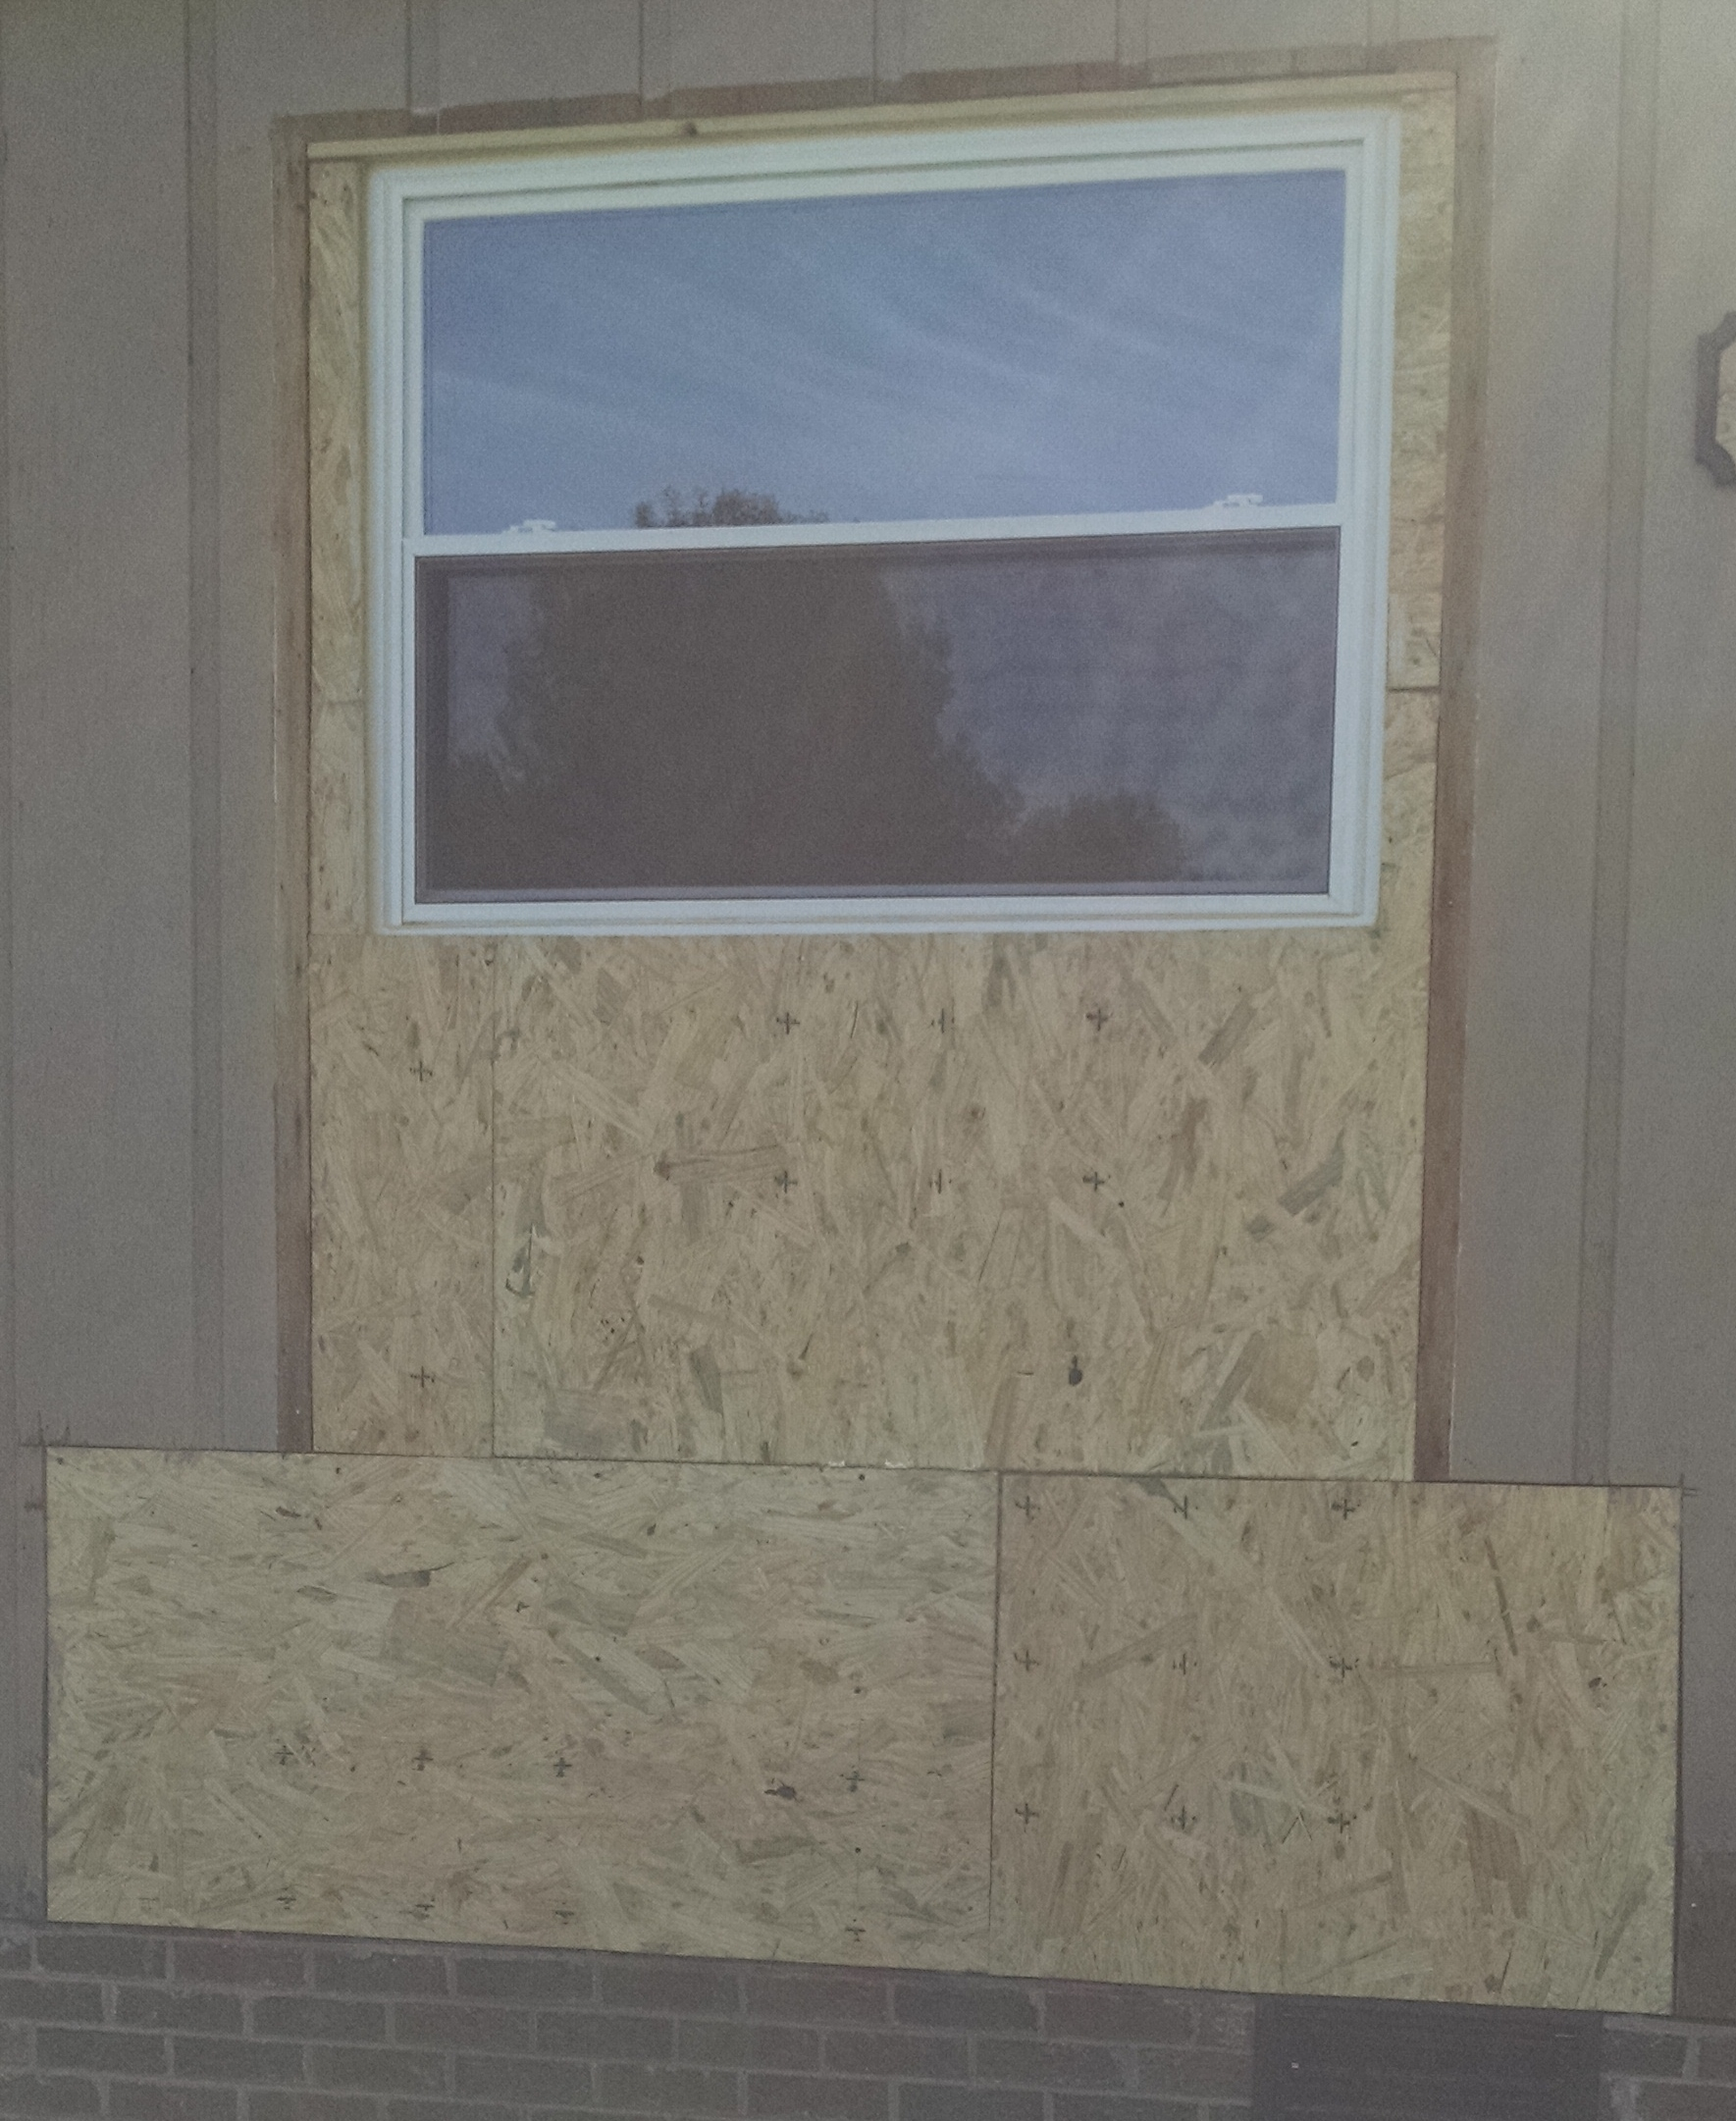 Riley S Siding Amp Windows Coupons Near Me In Hickory 8coupons